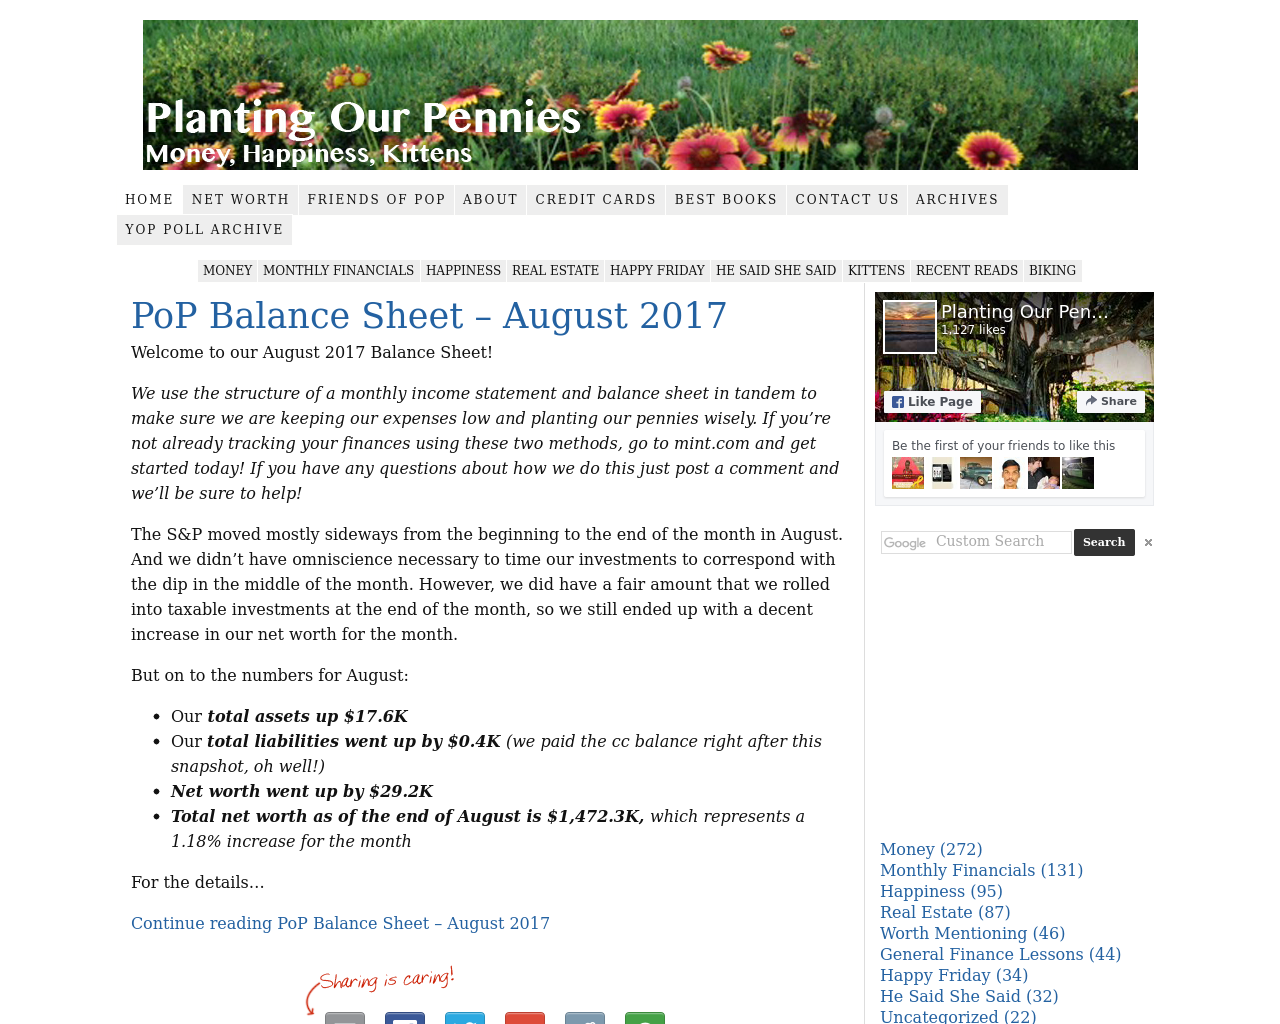 Planting-Our-Pennies-Advertising-Reviews-Pricing